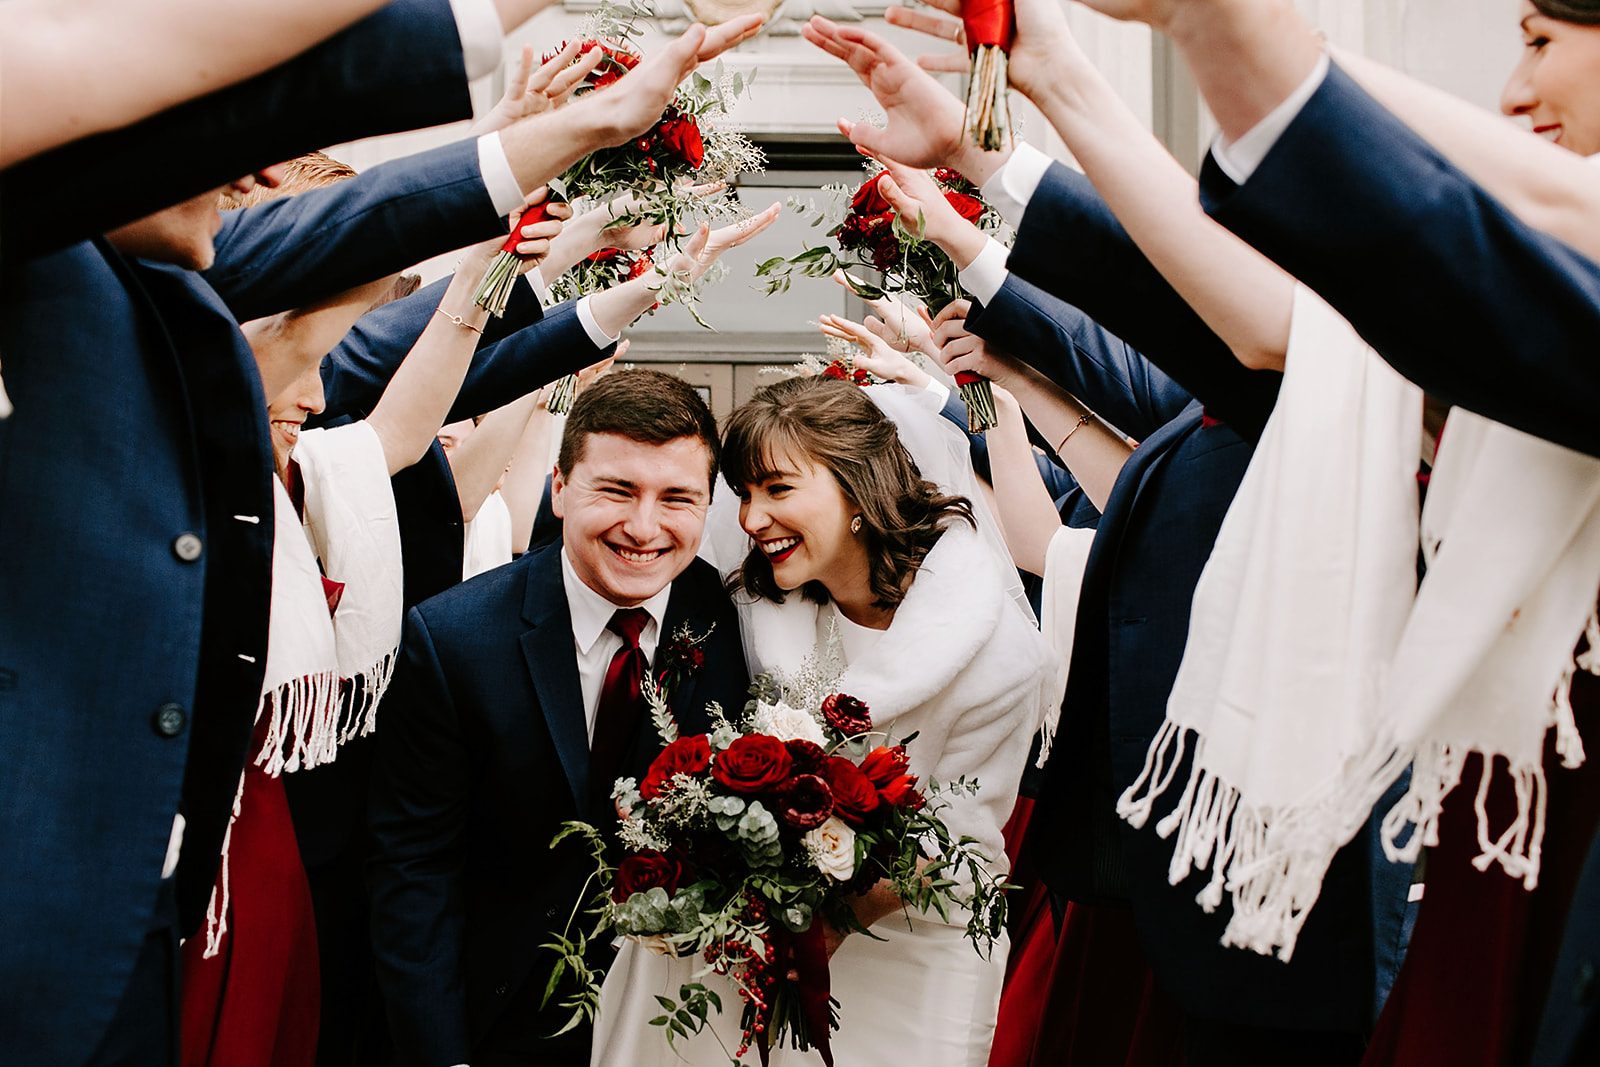 Emily and Davis_ Wedding at Vision Loft Indy in Indianapolis Indiana by Emily Elyse Wehner Photogrpahy LLC-221.jpg